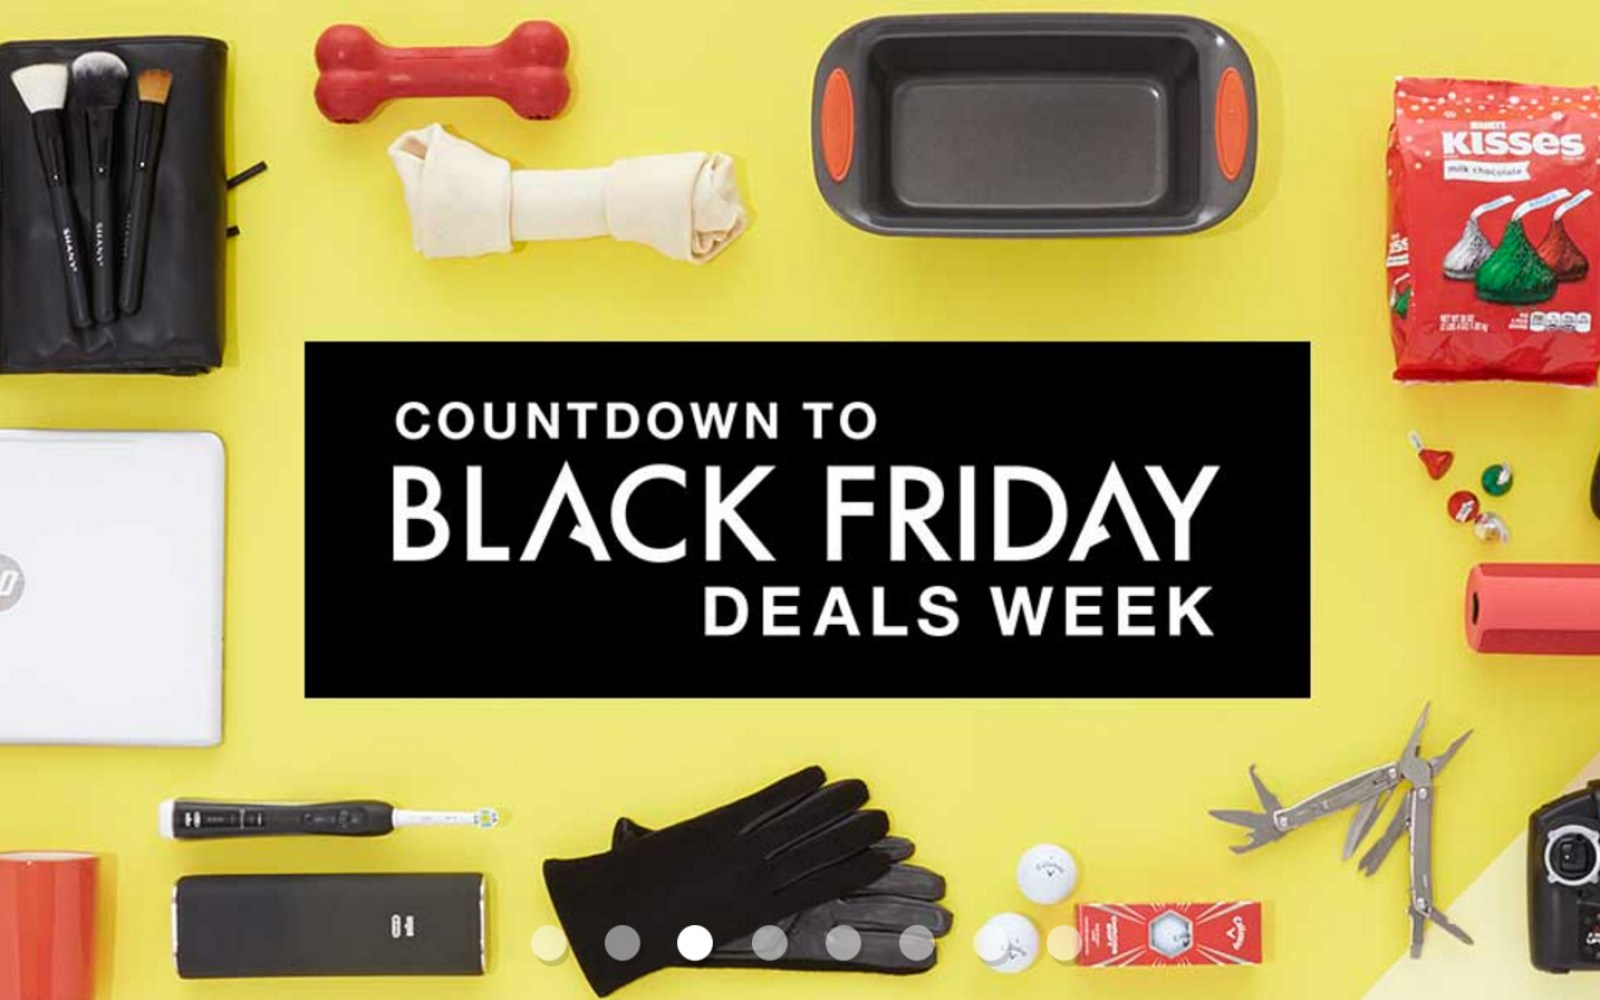 Amazon's Black Friday deals go live later this week w/ mobile shoppers getting extra perks